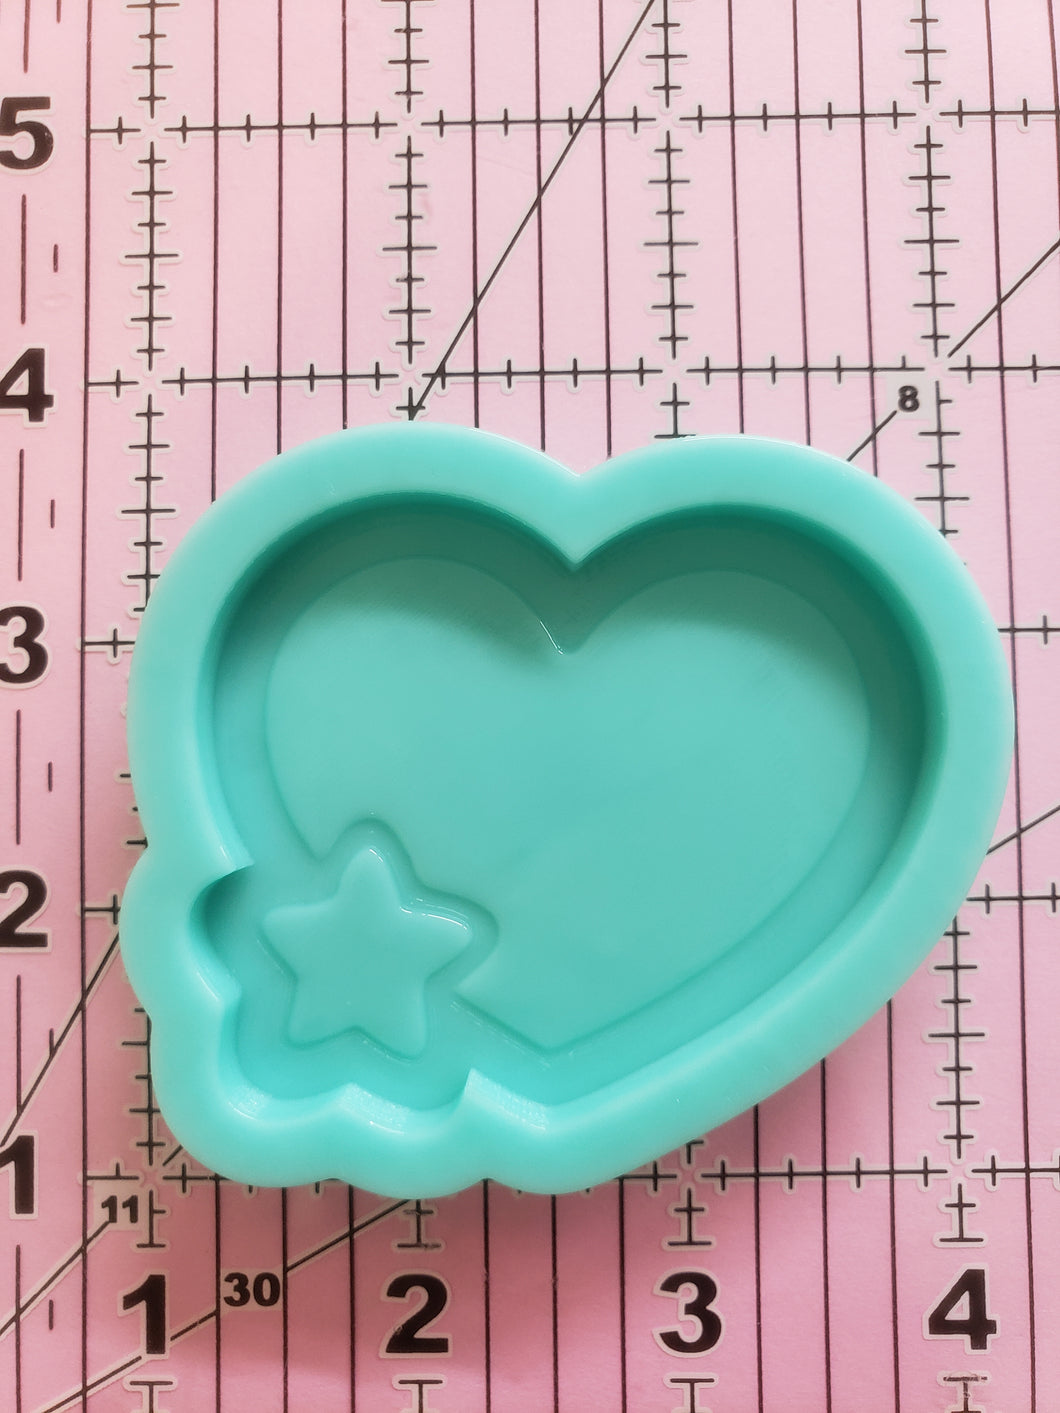 Heart w/ Star Non-shaker Mold